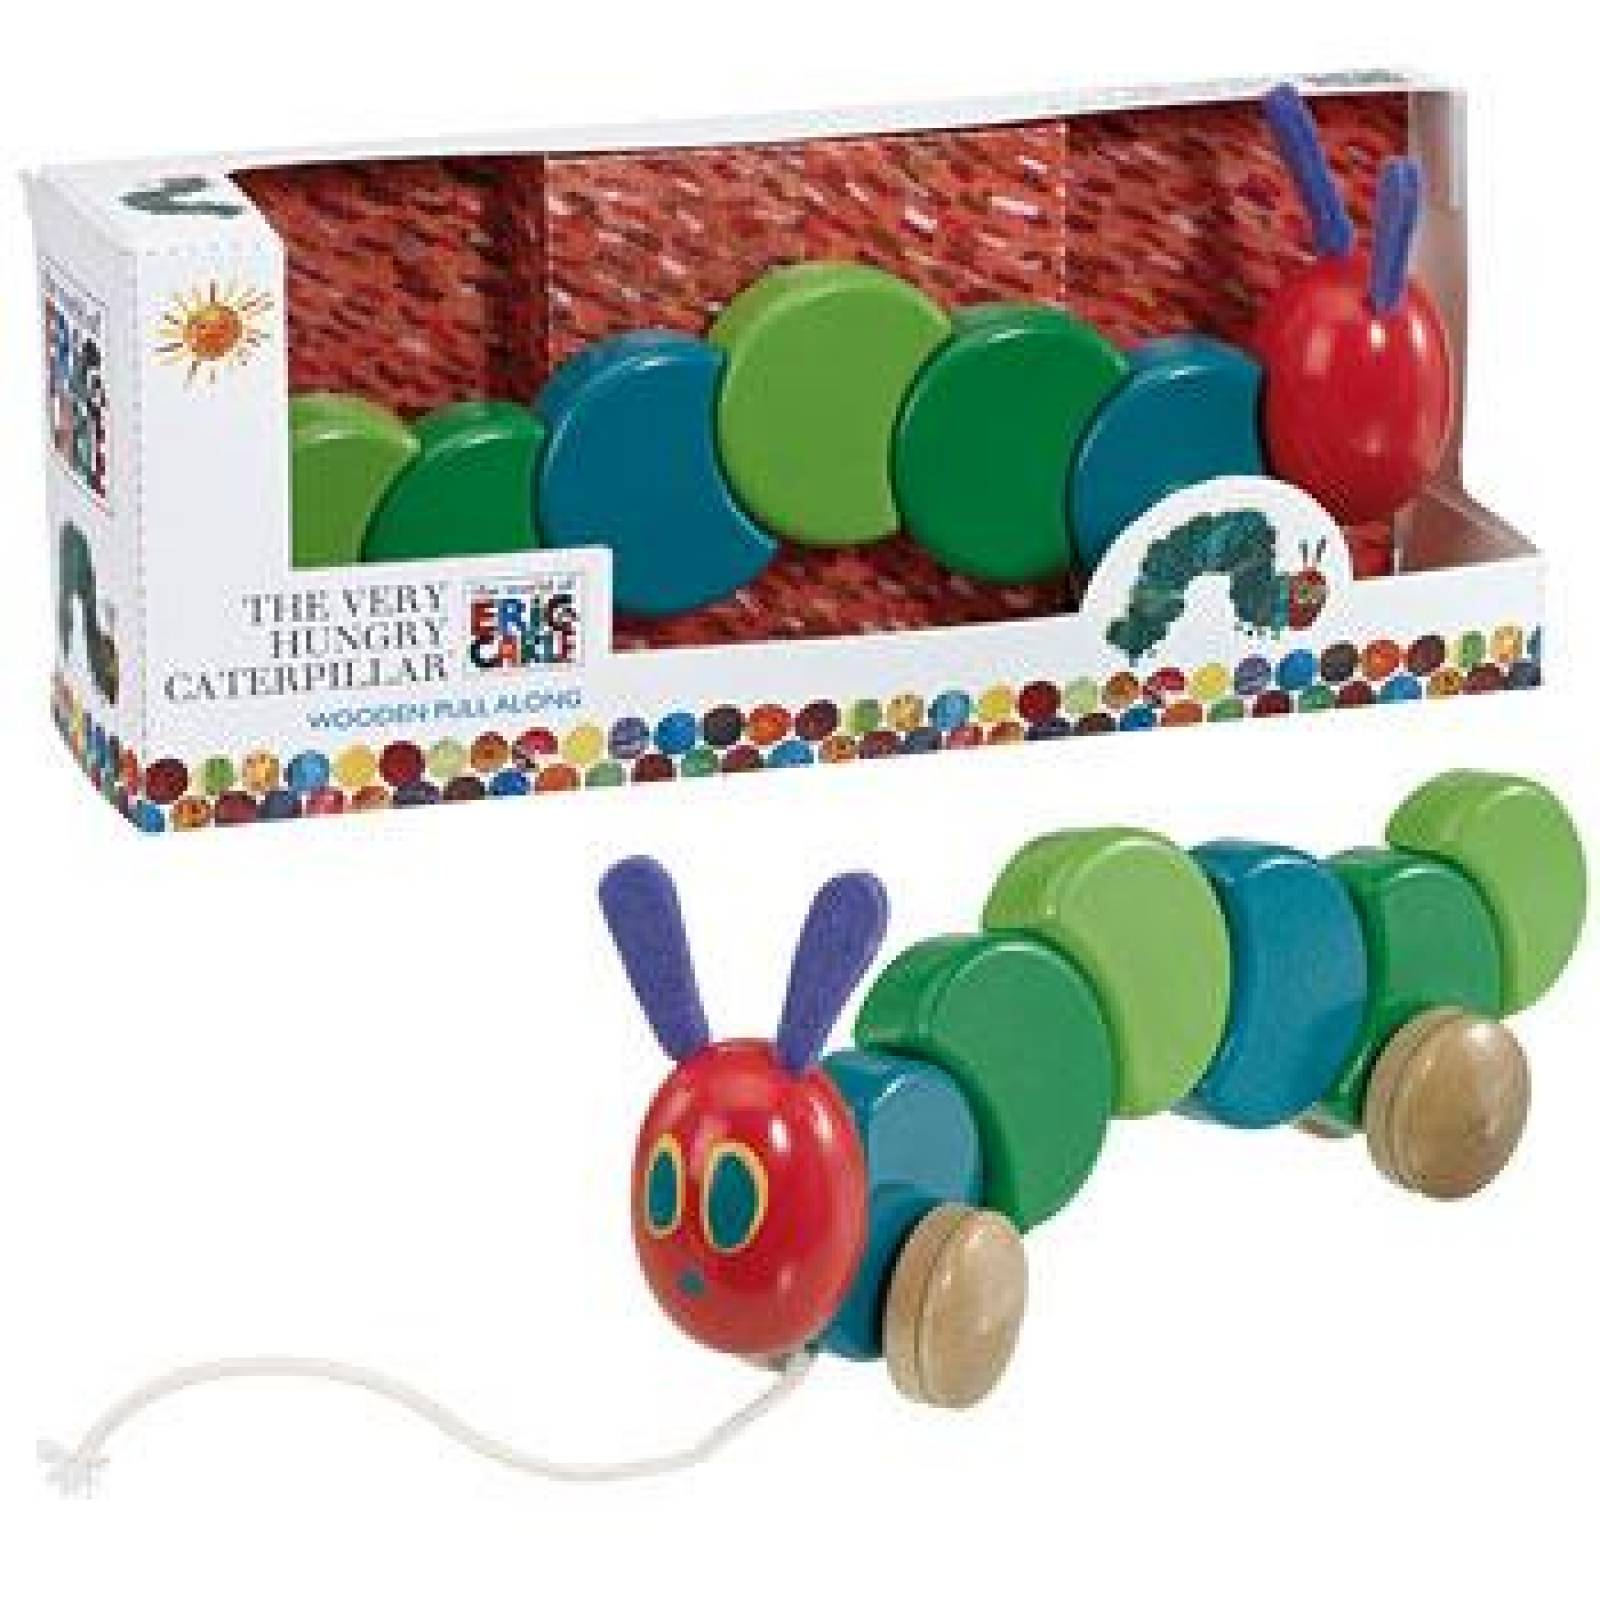 The Very Hungry Caterpillar Wooden Pull Along Toy 1+